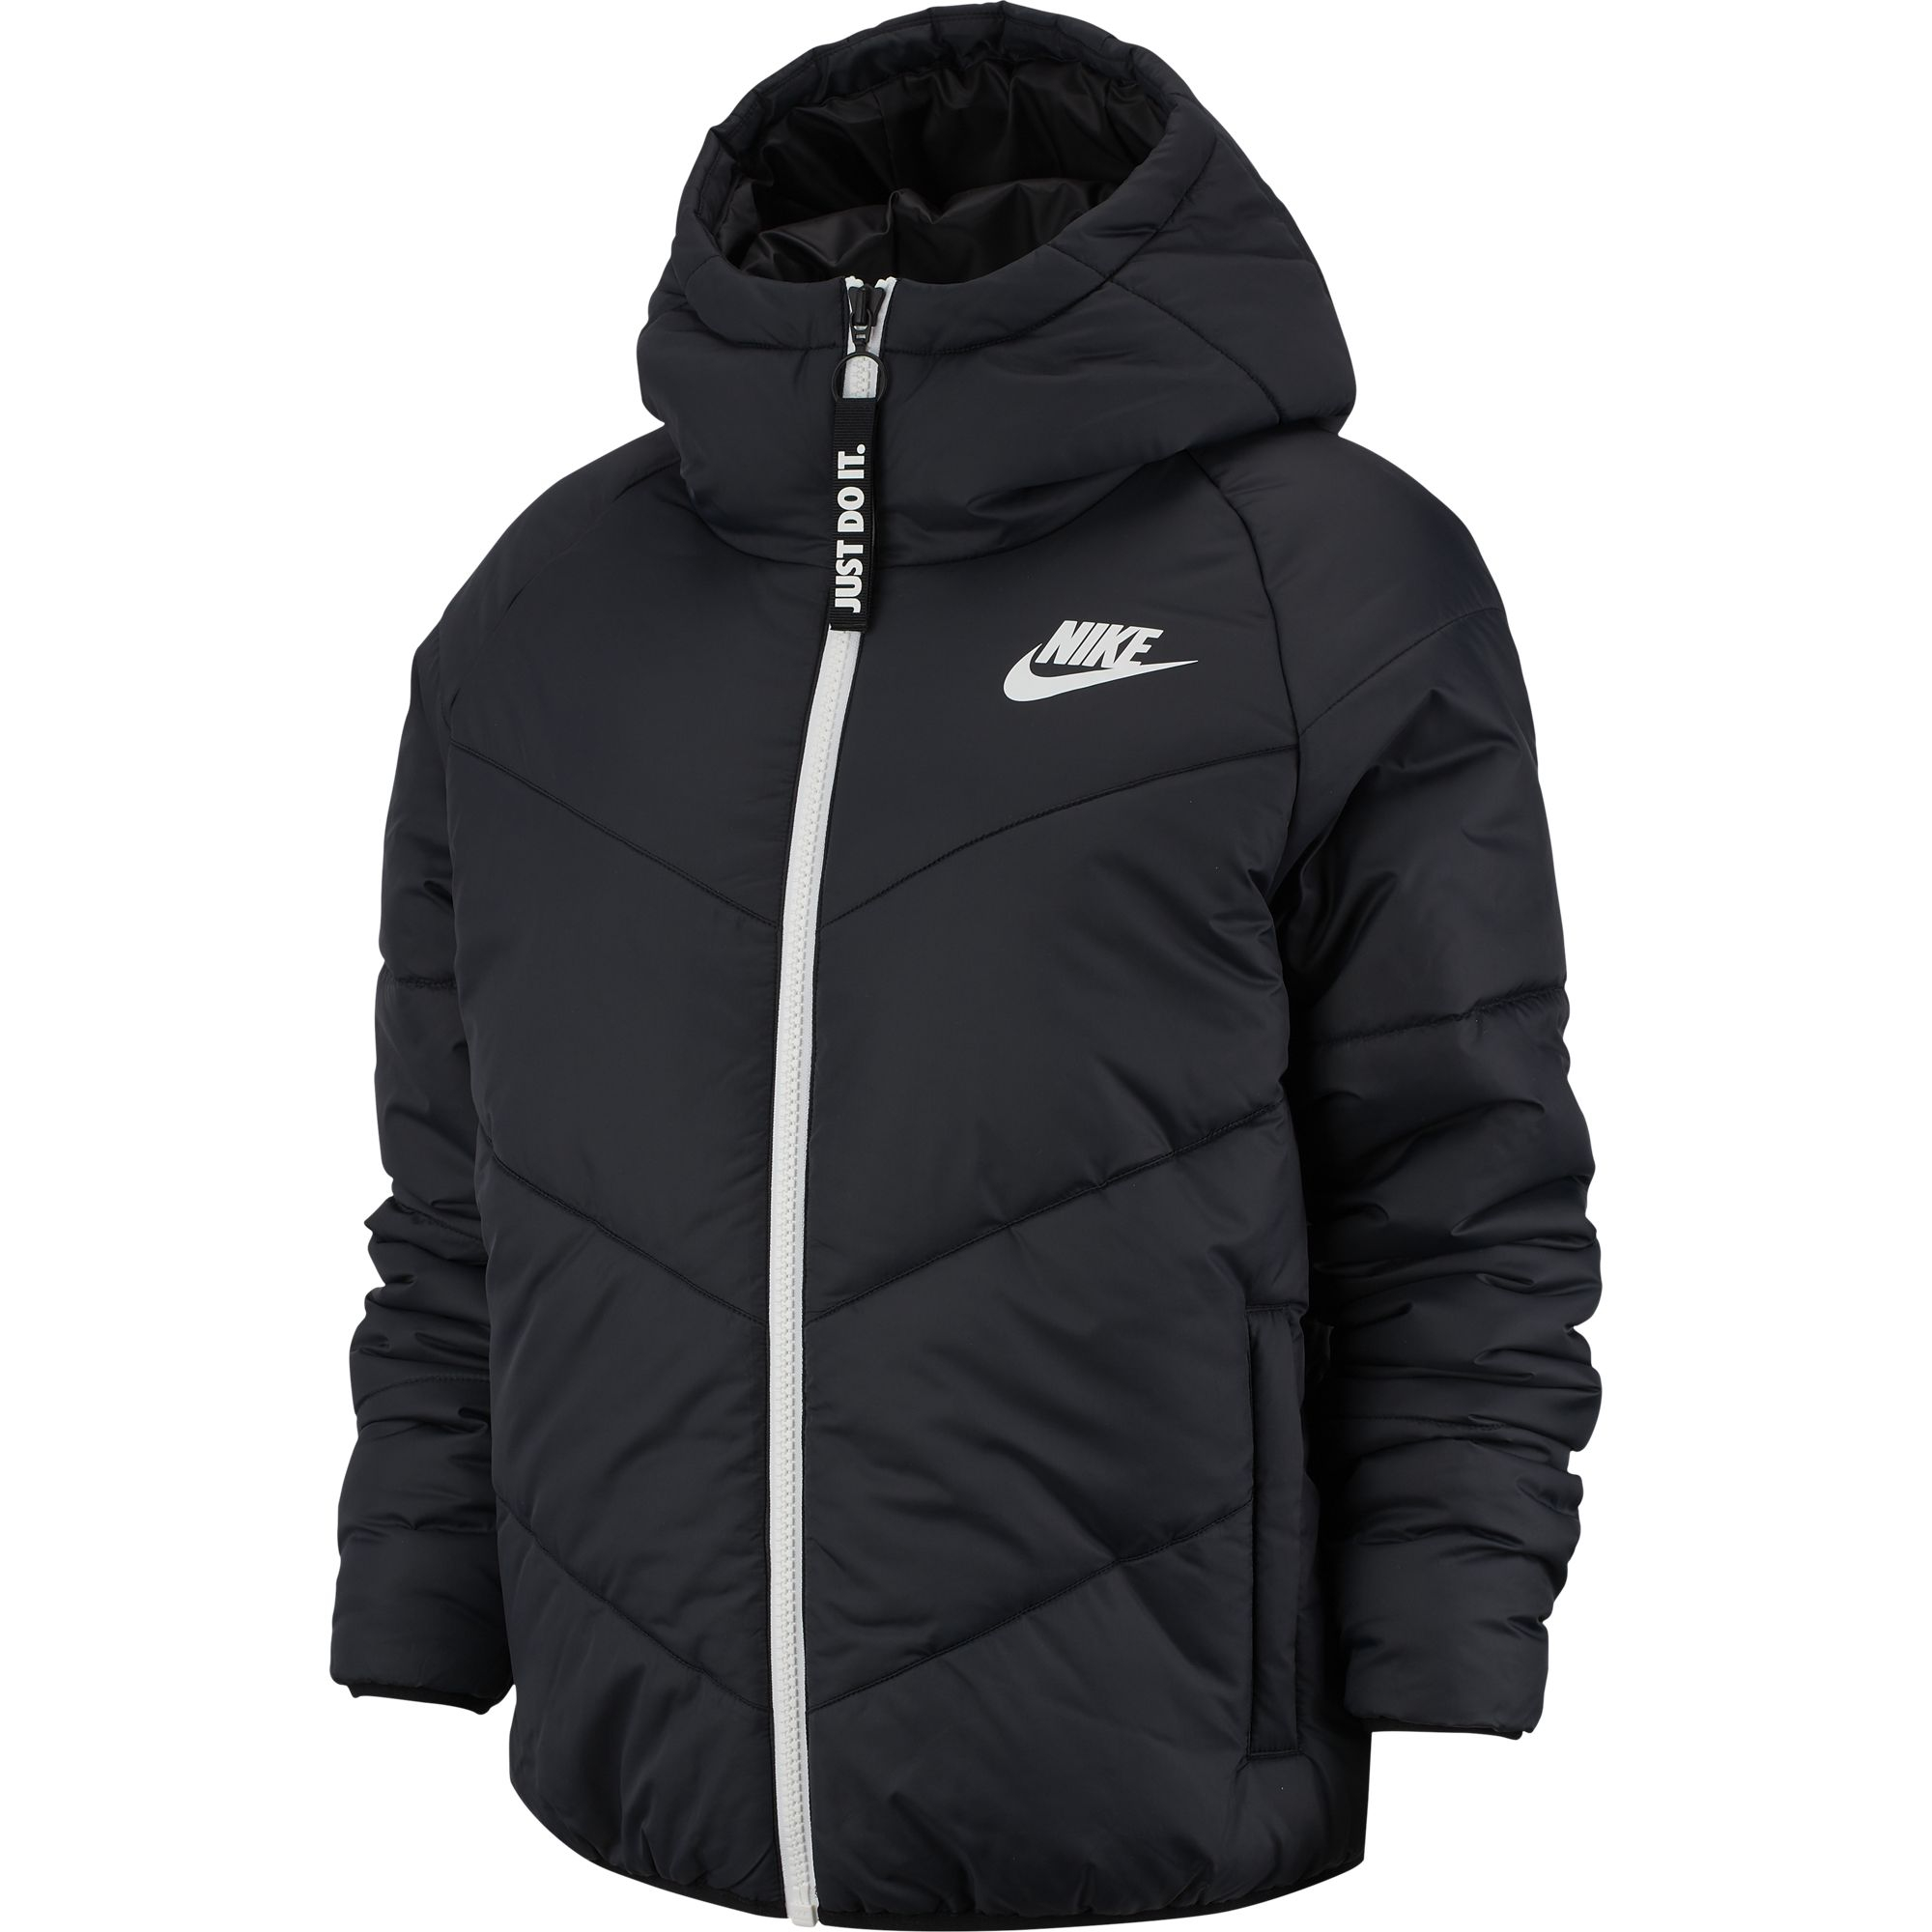 CHAQUETA NIKE WINDRUNNER MUJER BV2906 010 Deportes Liverpool